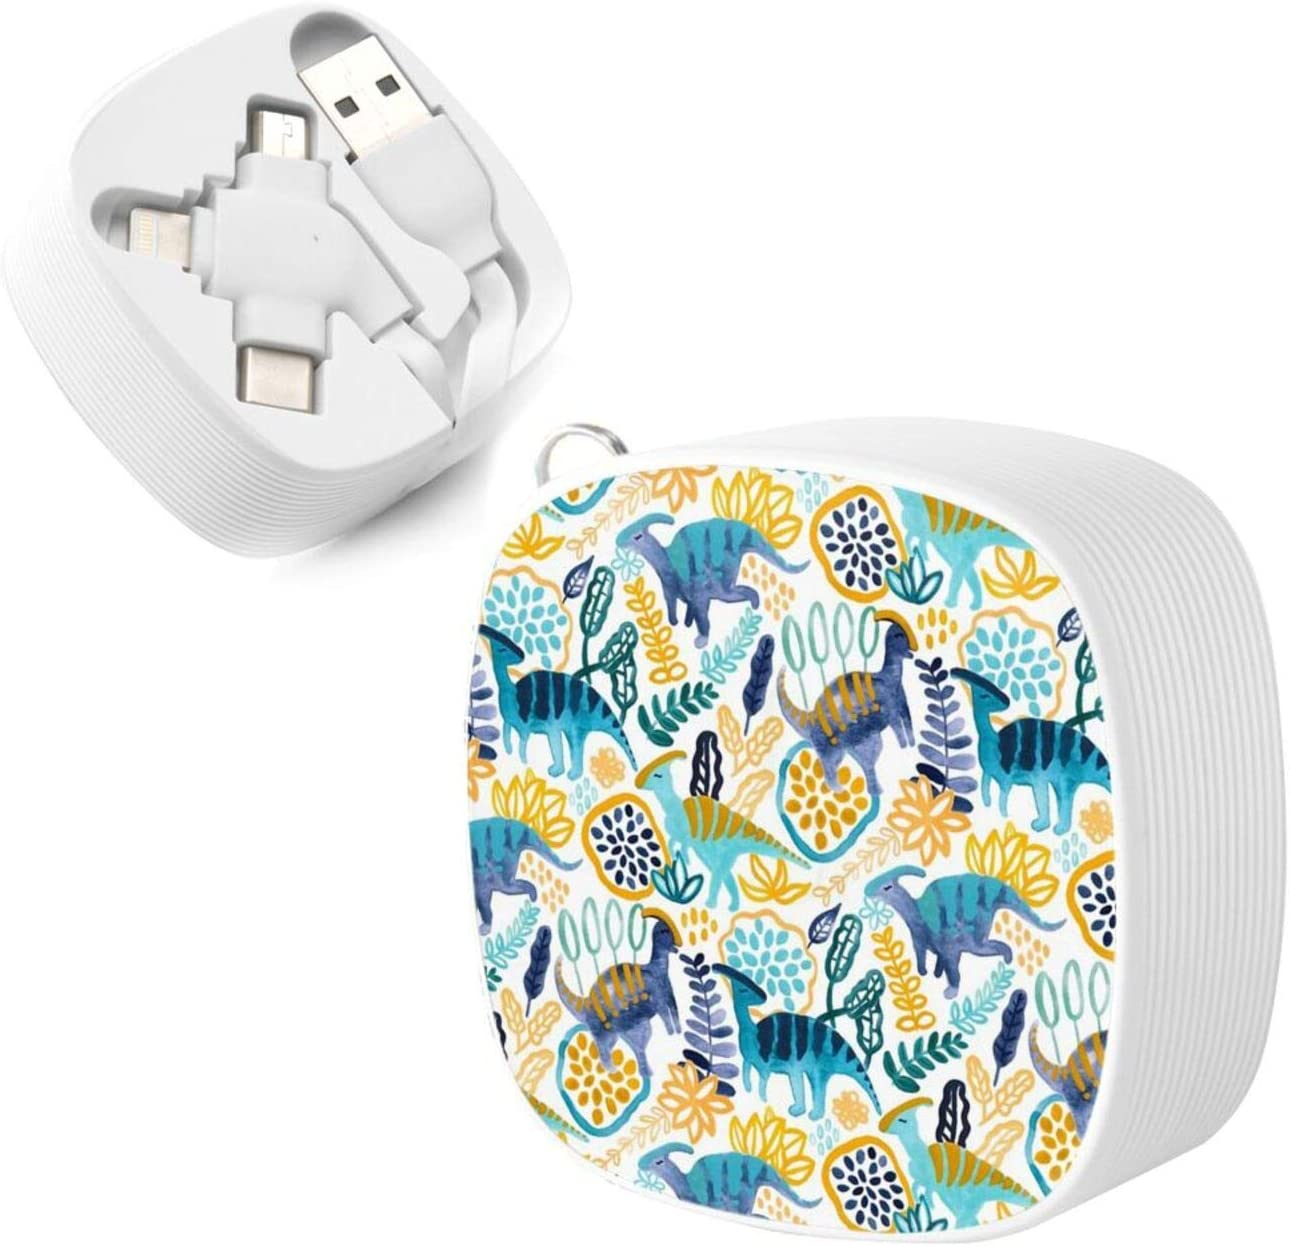 Multi Charging Cable Portable 3 in 1 Gouache Parasaurolophuses Throw Pillow USB Power Cords for Cell Phone Tablets and More Devices Charging